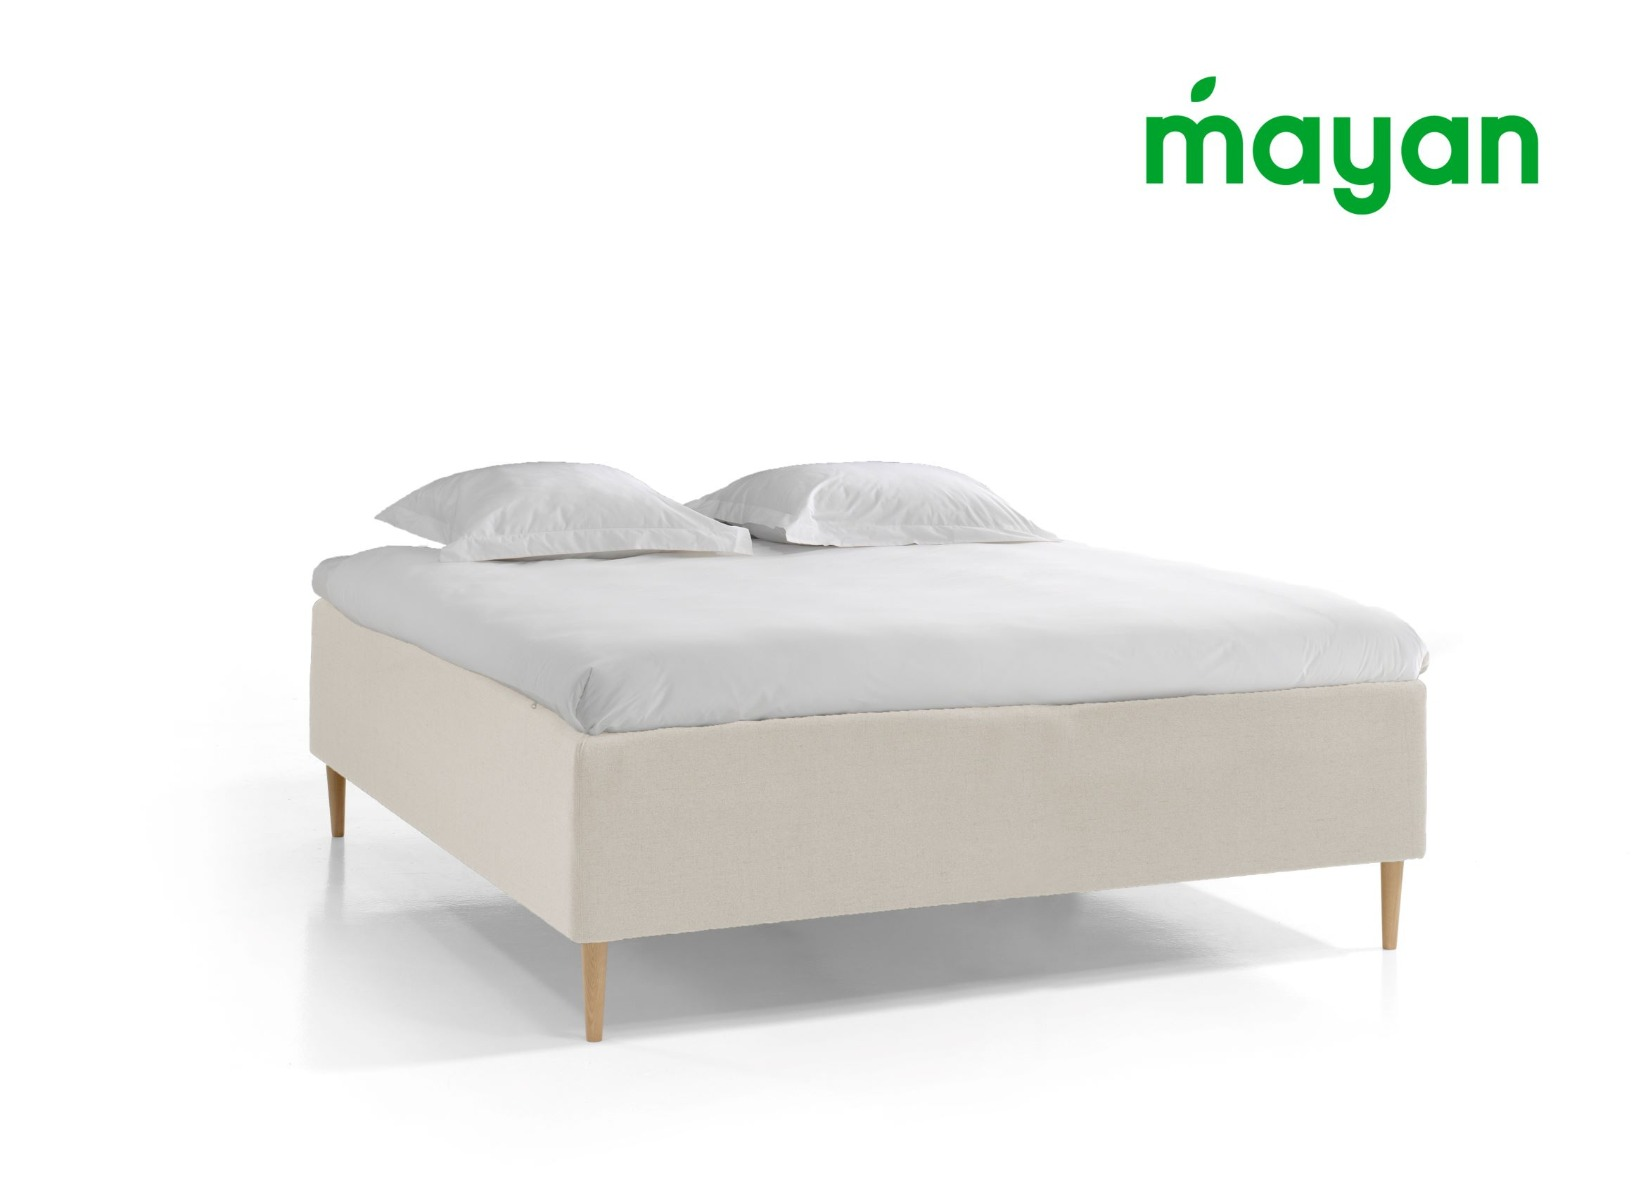 european house of beds – Venus mayan - beige på bedre nætter